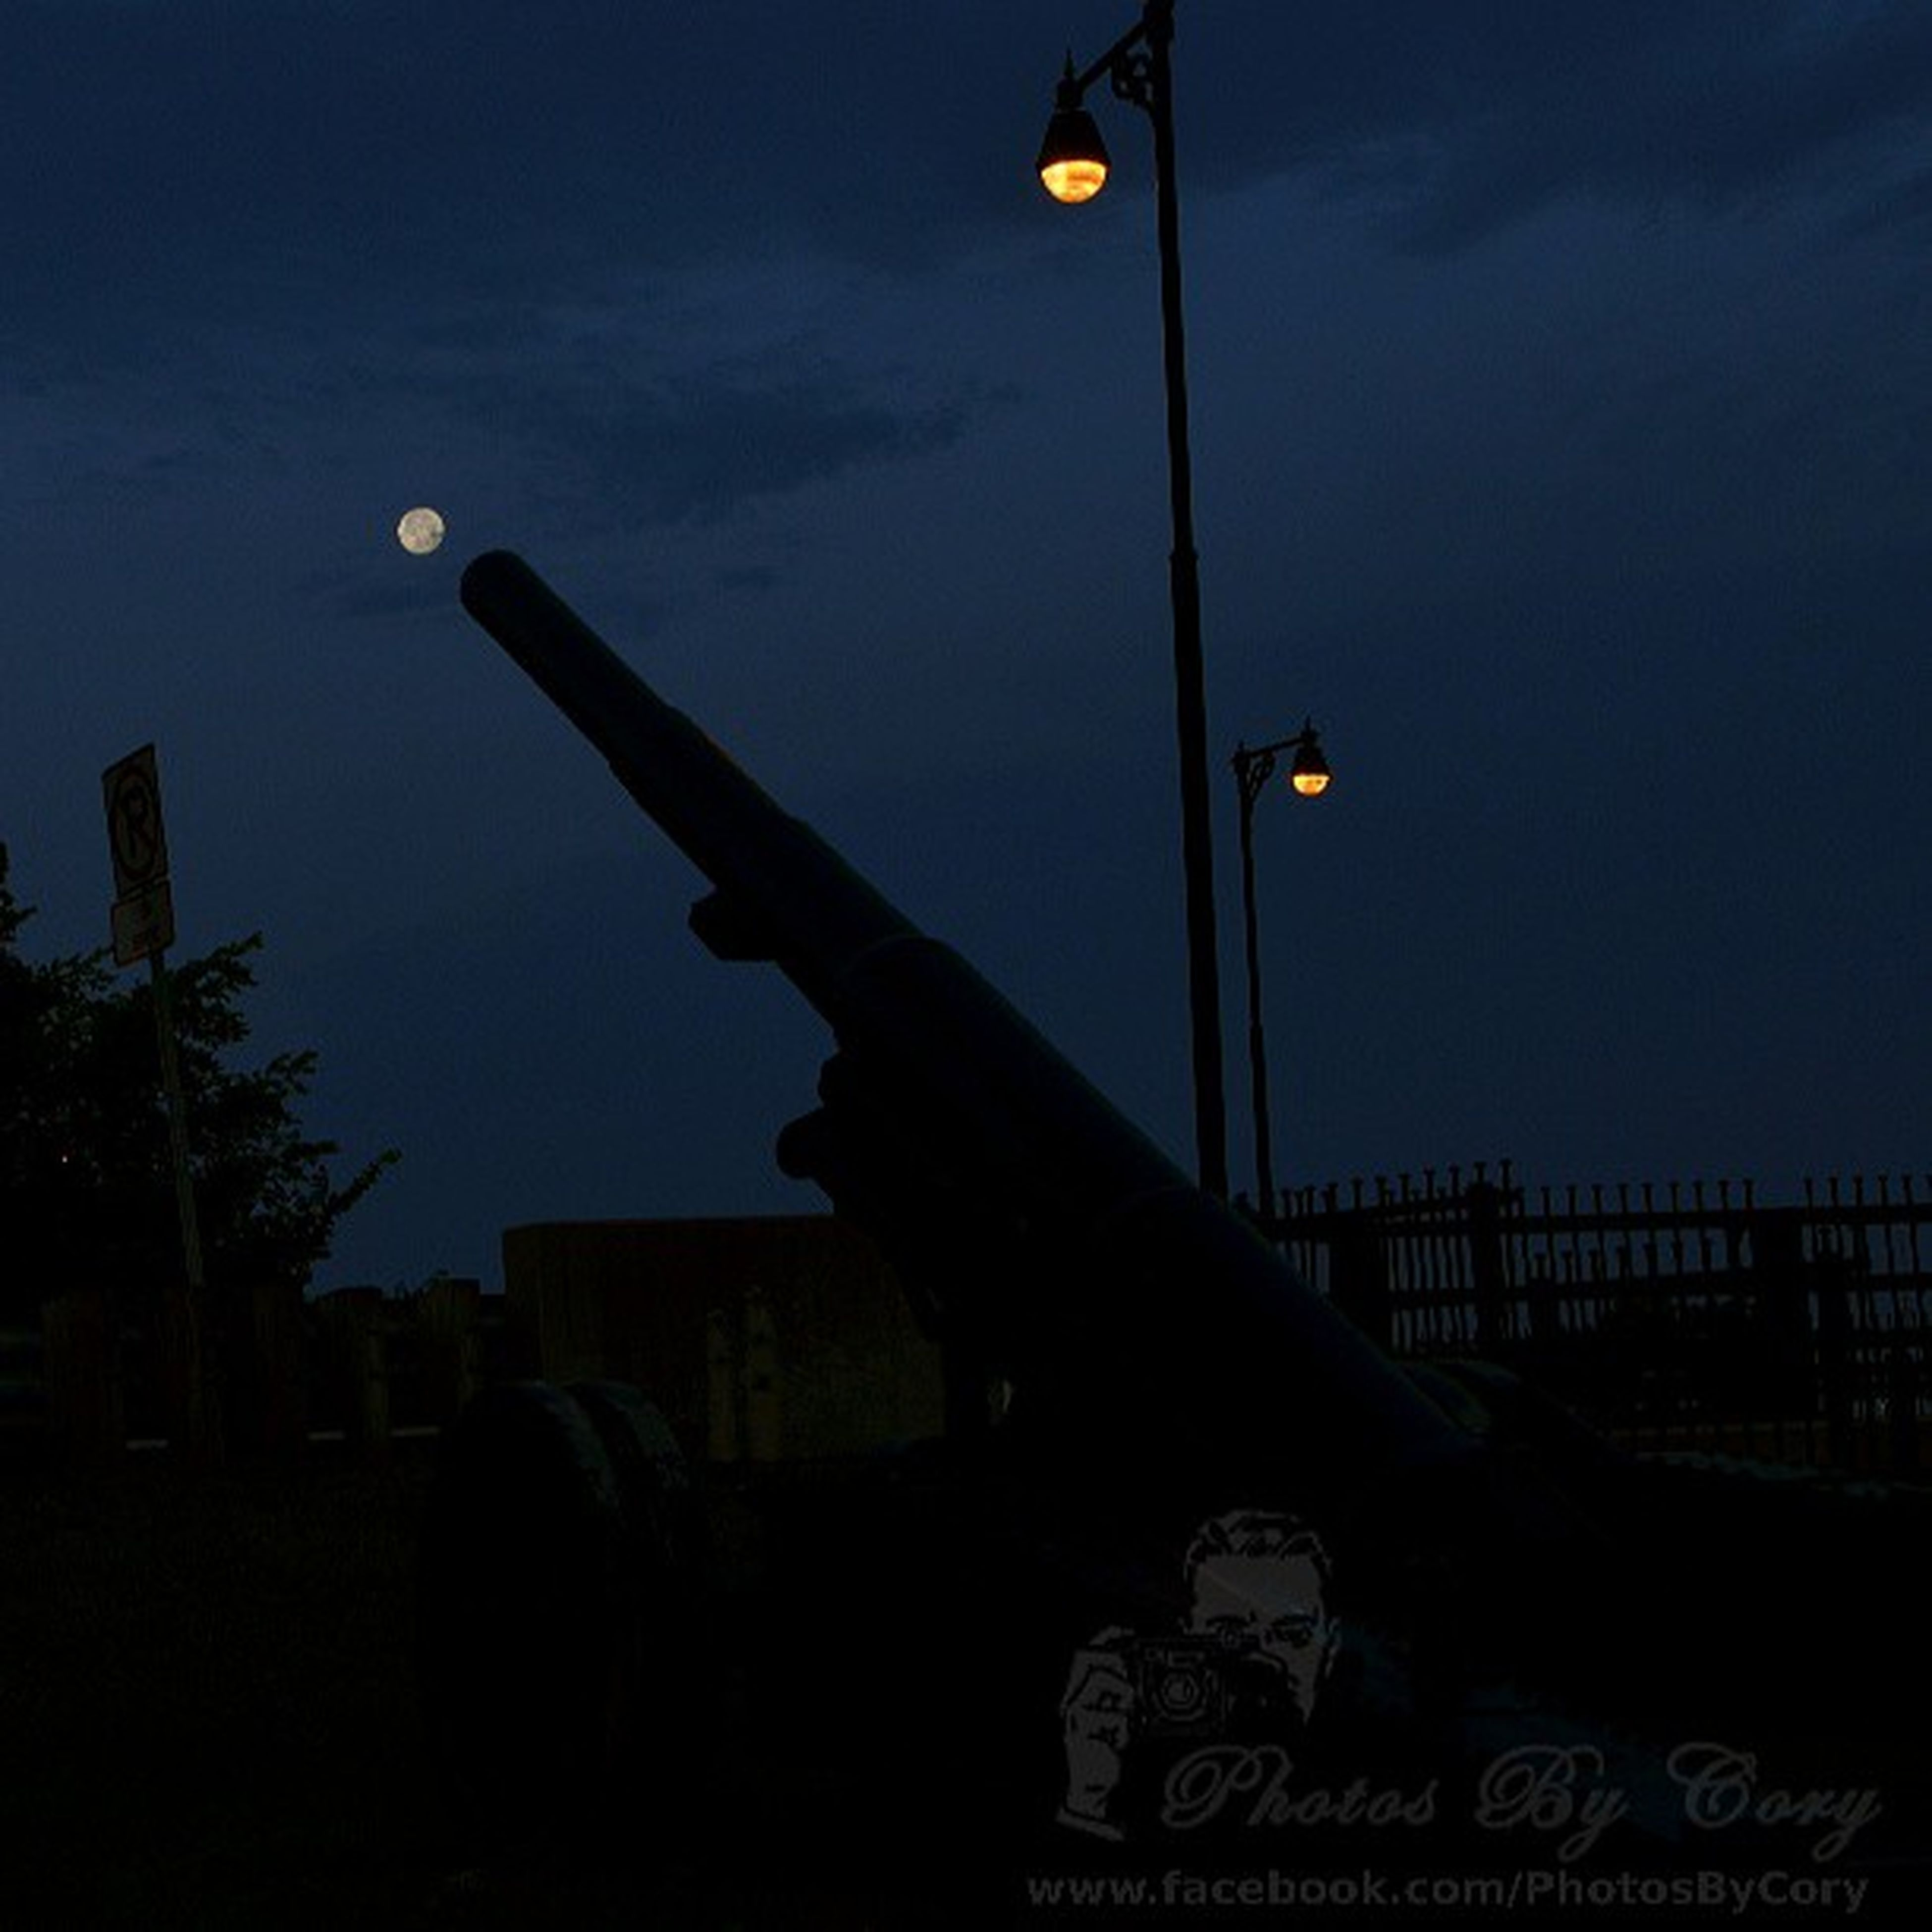 sky, street light, night, illuminated, low angle view, dusk, lighting equipment, silhouette, cloud - sky, transportation, one person, outdoors, moon, cloud, mid-air, built structure, pole, sunset, flying